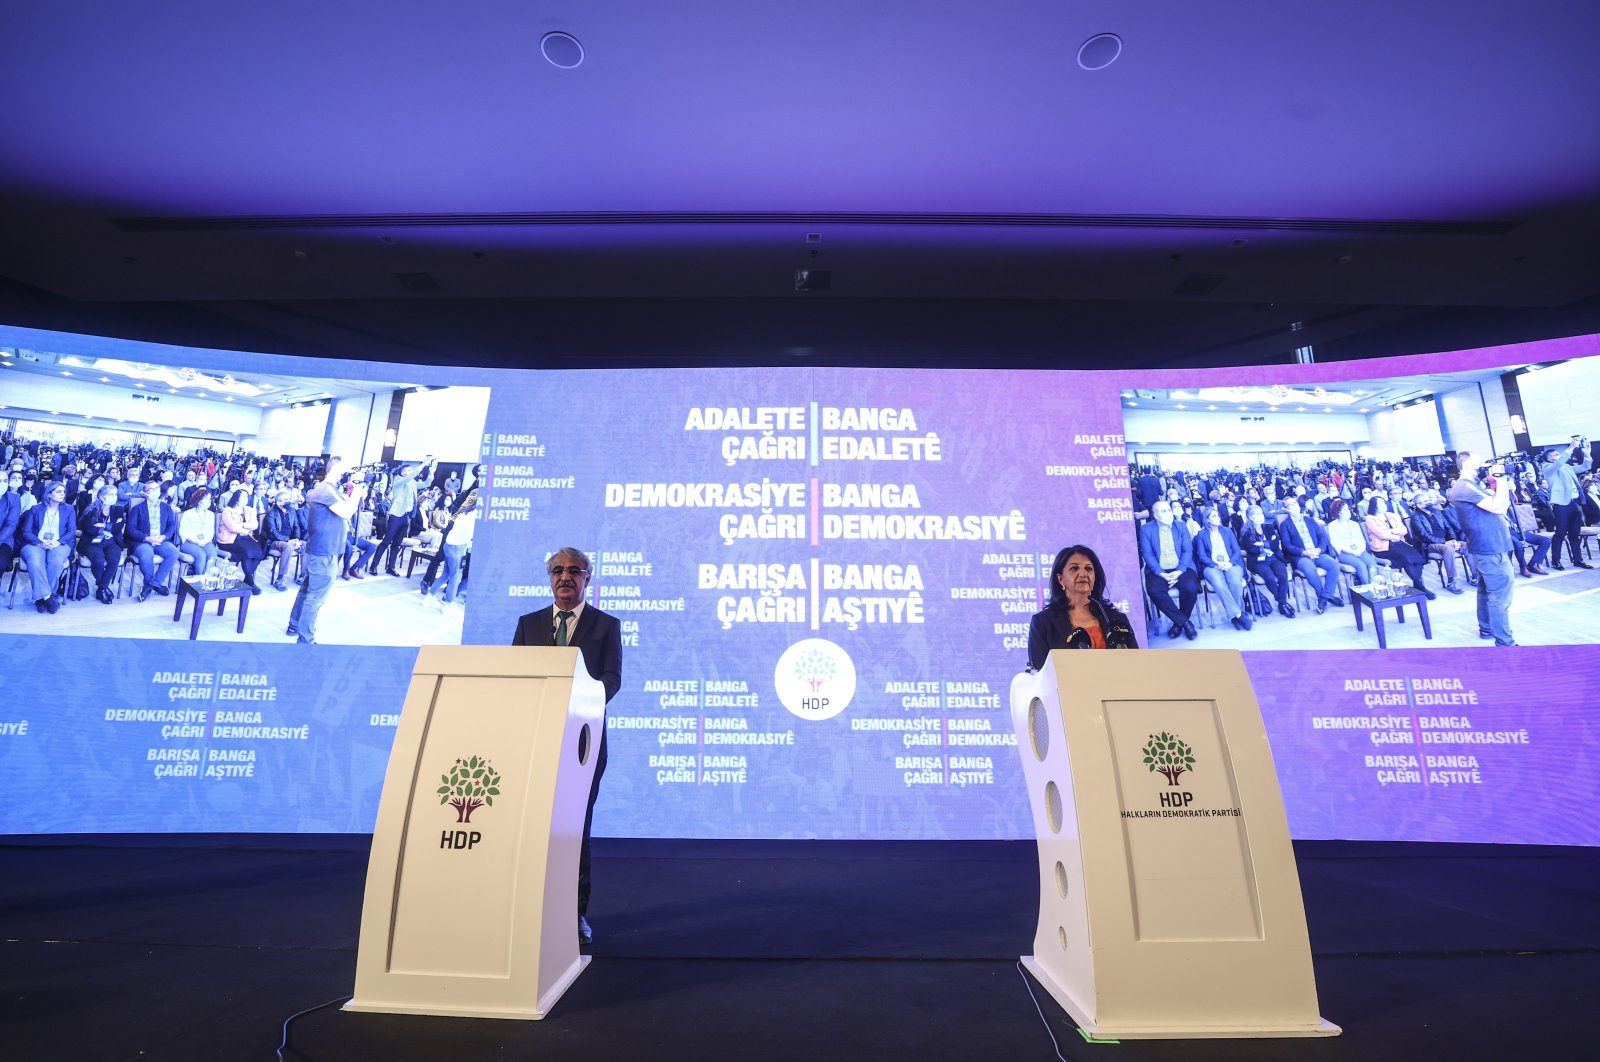 HDP Co-Chairpersons Mithat Sancar and Pervin Buldan speak at meeting to announce their party platform for the 2023 elections in Turkey's capital Ankara, Sept. 27, 2021. (AA Photo)